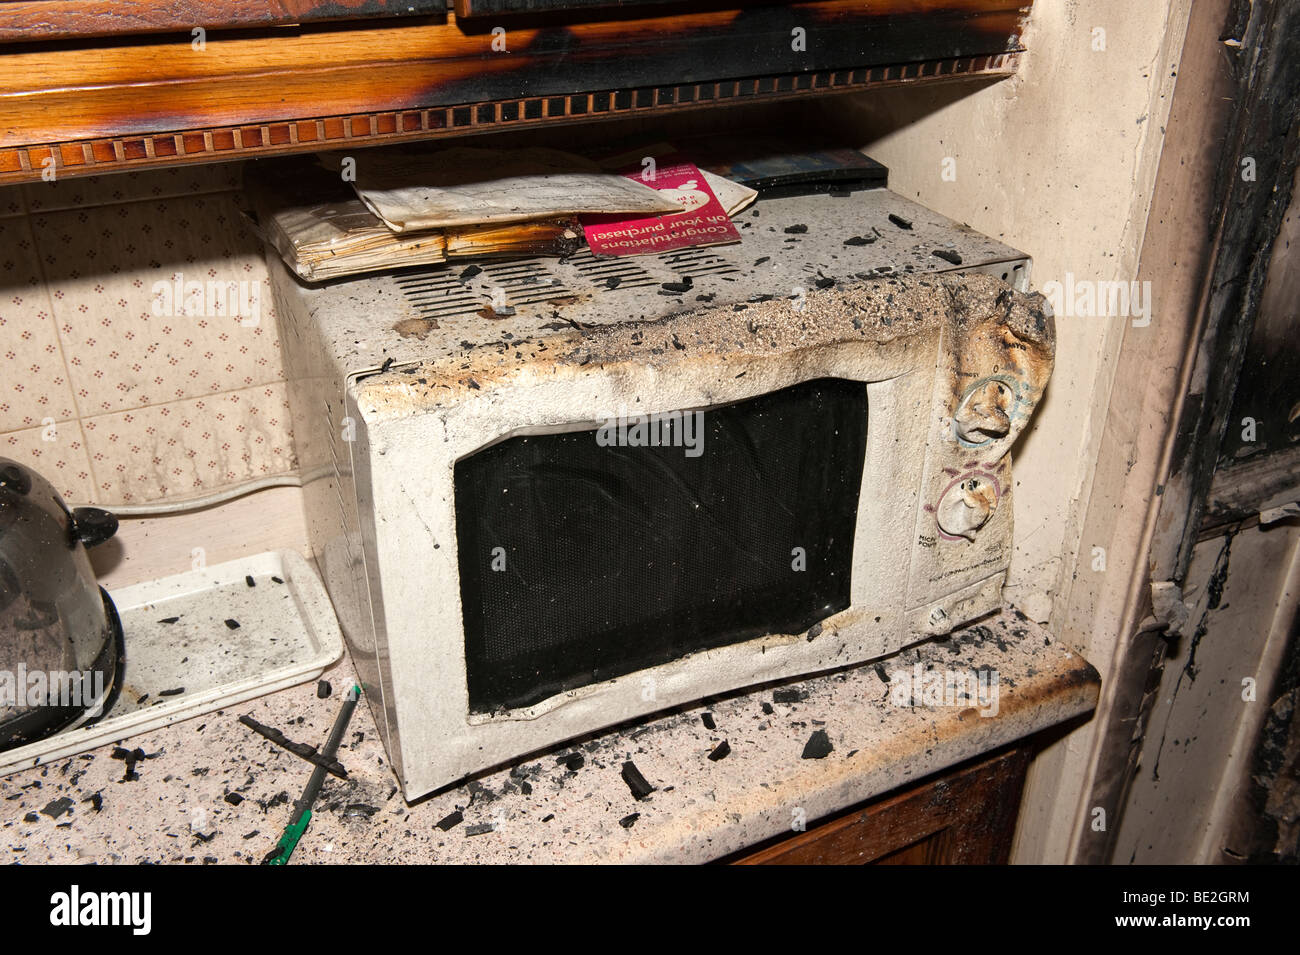 Melted Microwave Oven Following Kitchen Fire In House